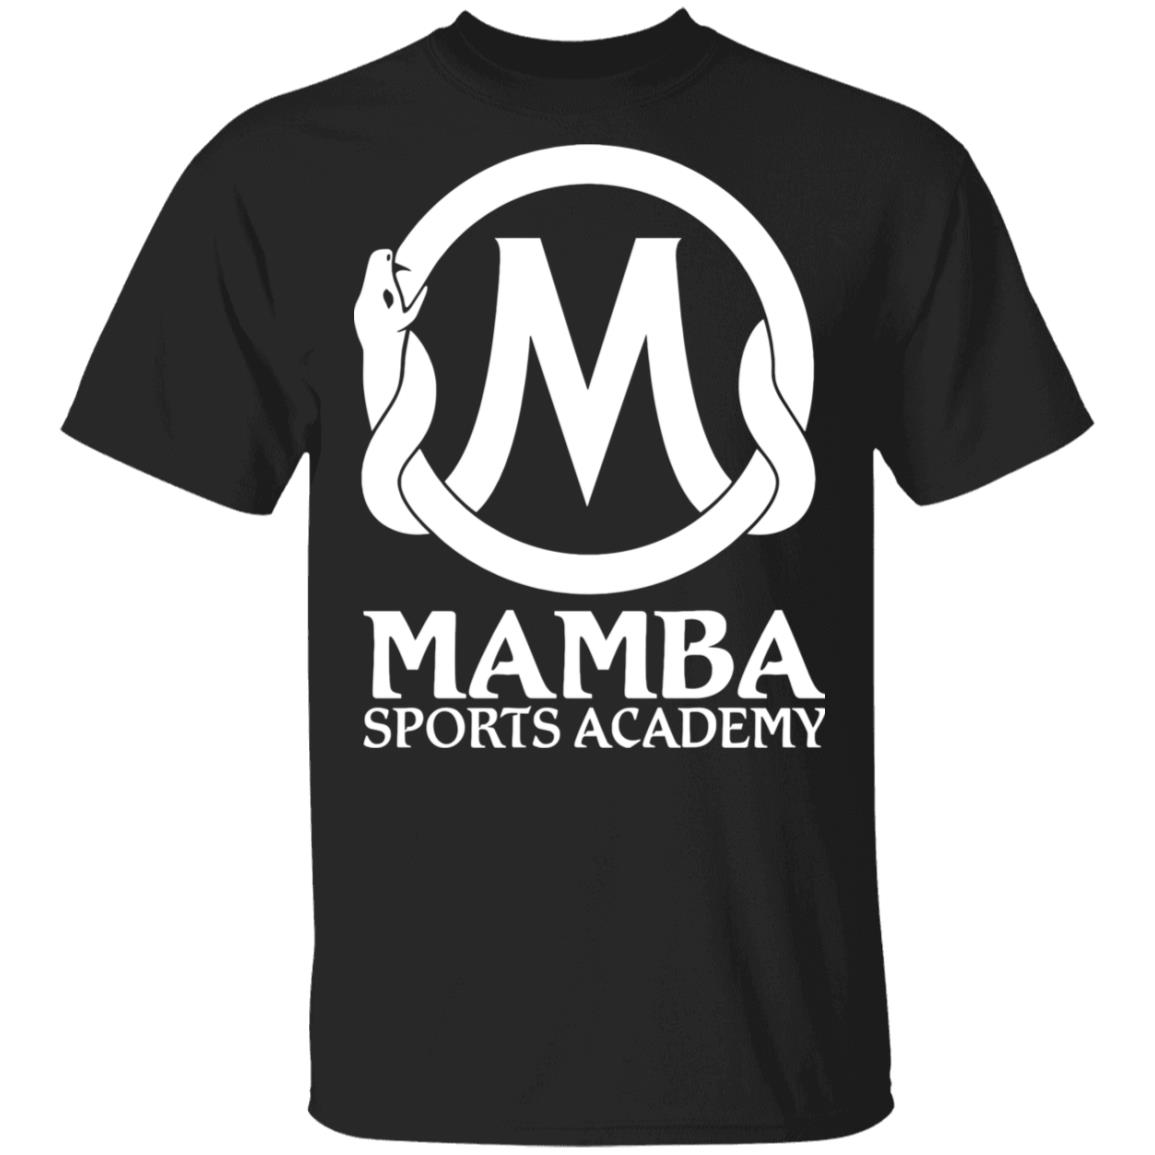 Mamba sports academy black shirt